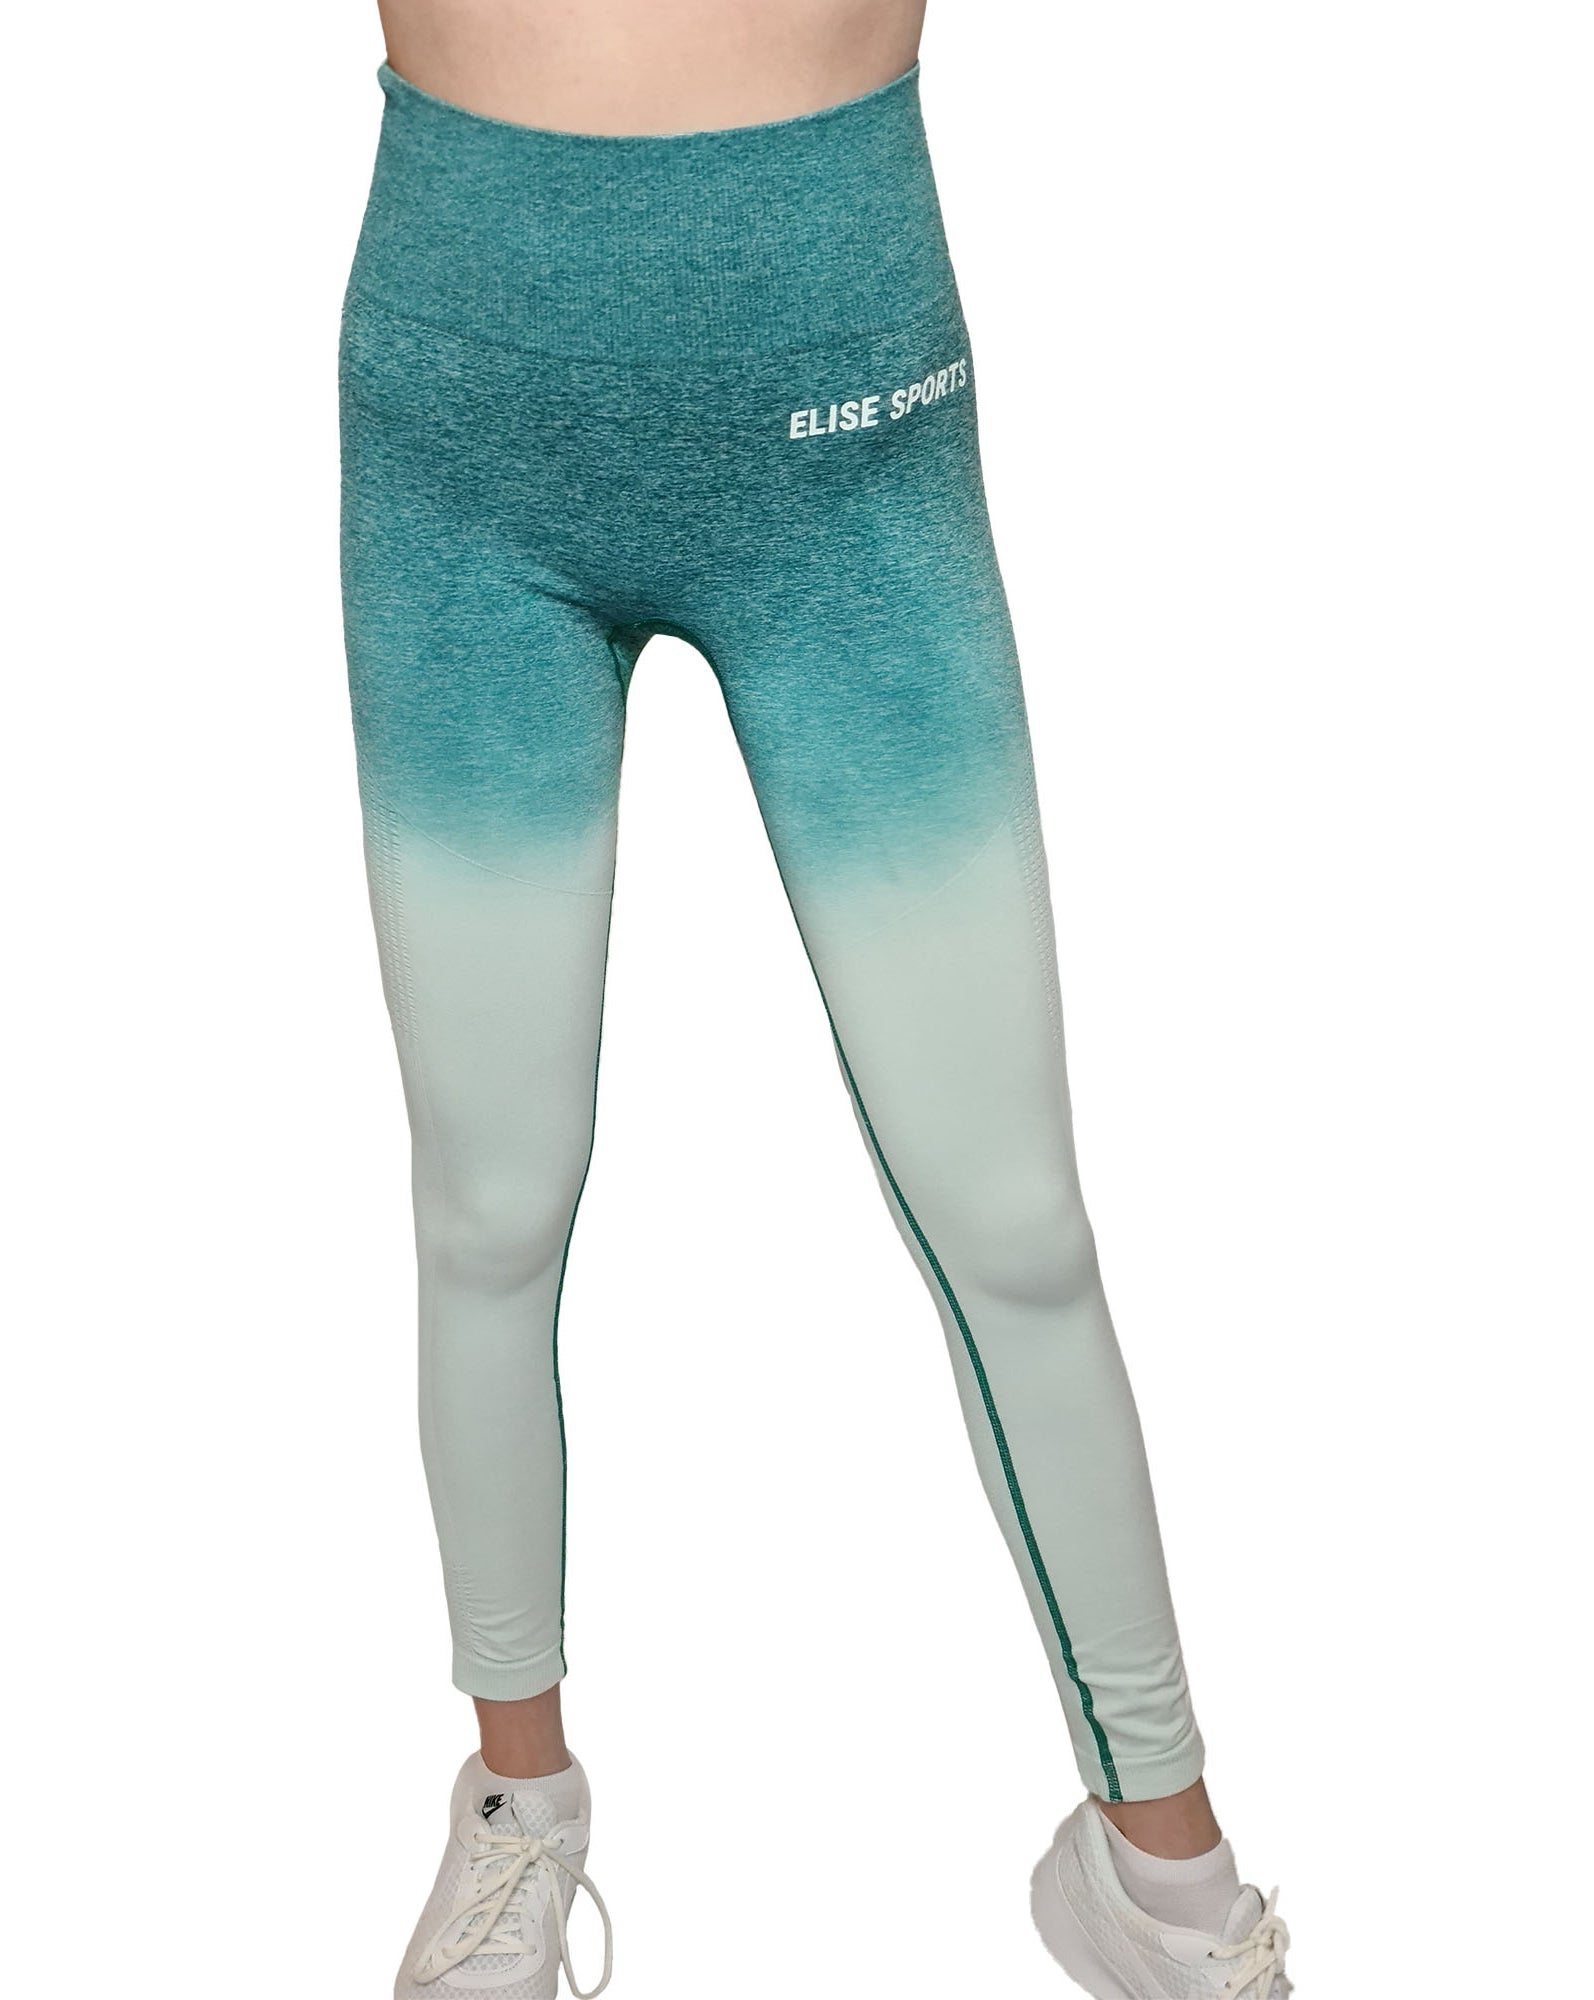 MILA TEAL OMBRE WOMANS GYM LEGGINGS-ARTEMIS CLASSIC COLLECTION